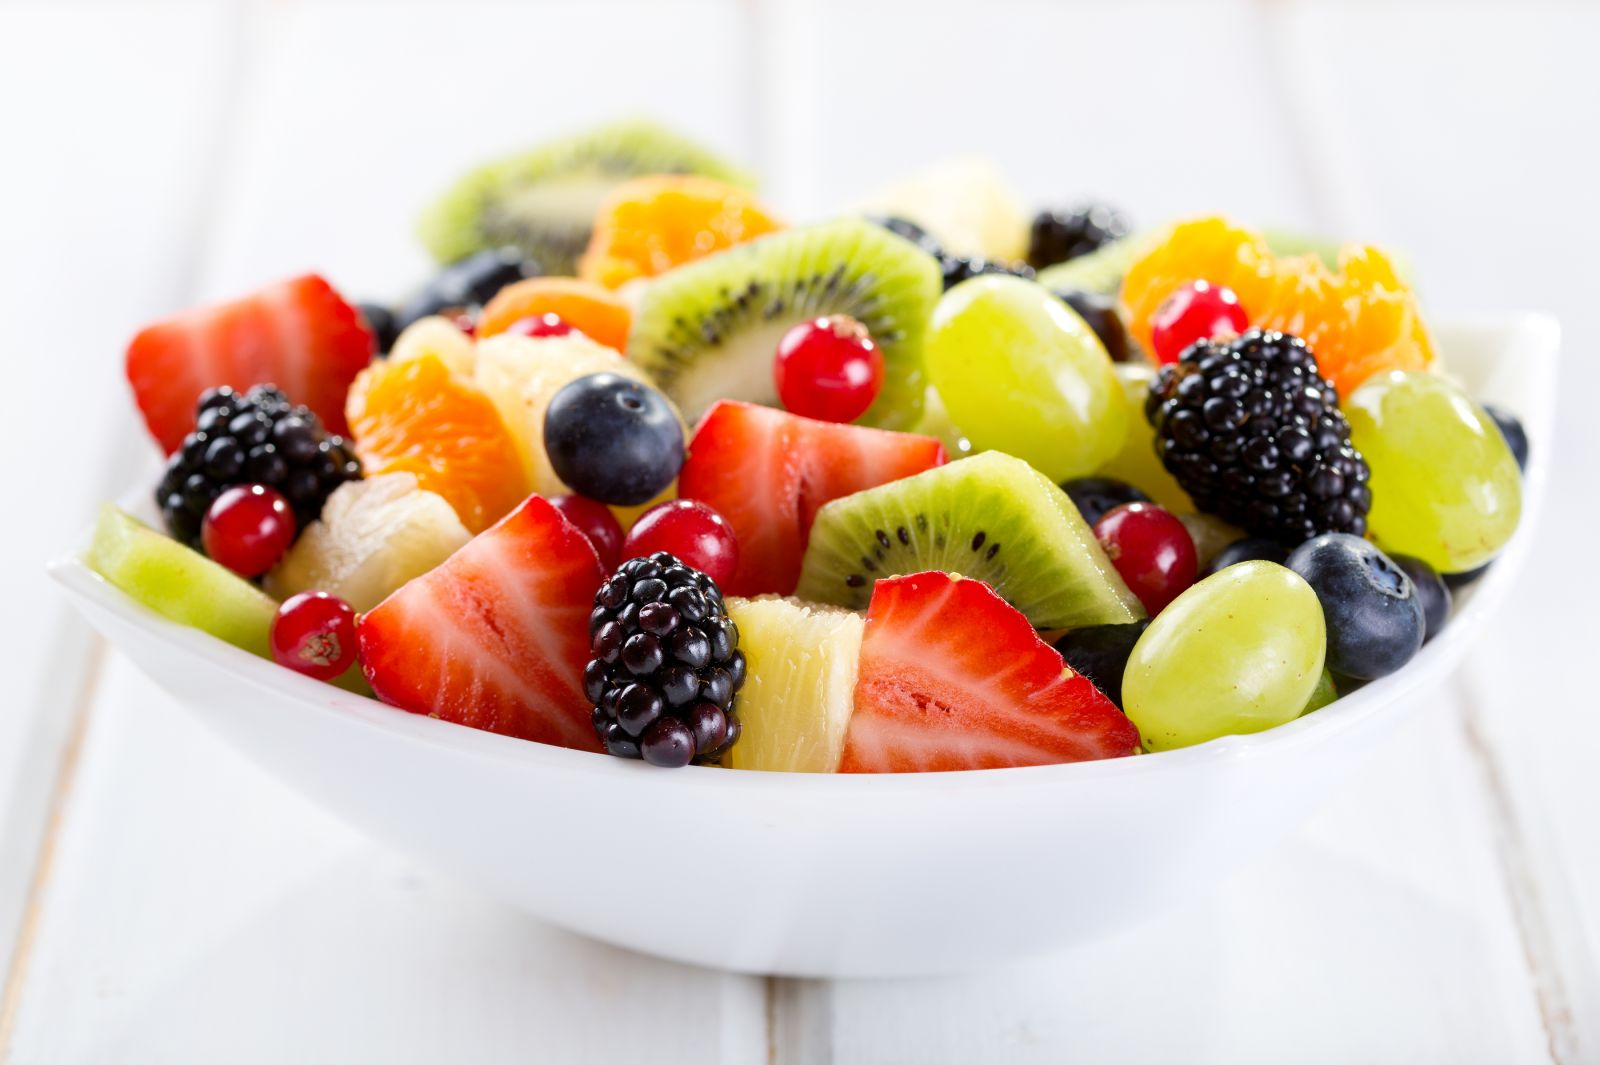 Healthy-mixed-bowl-of-Fruit-Salad-63061912.jpg